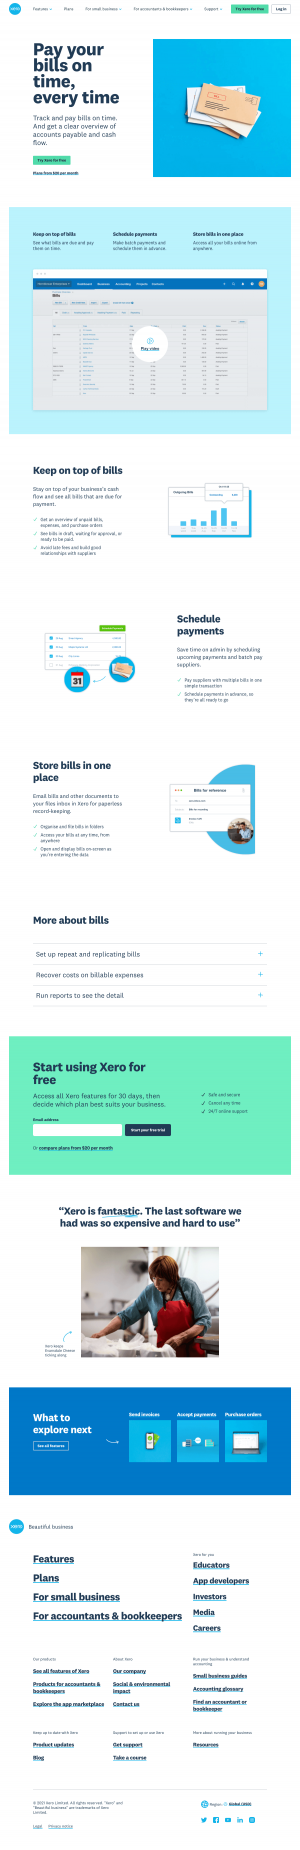 Xero – Features page 1